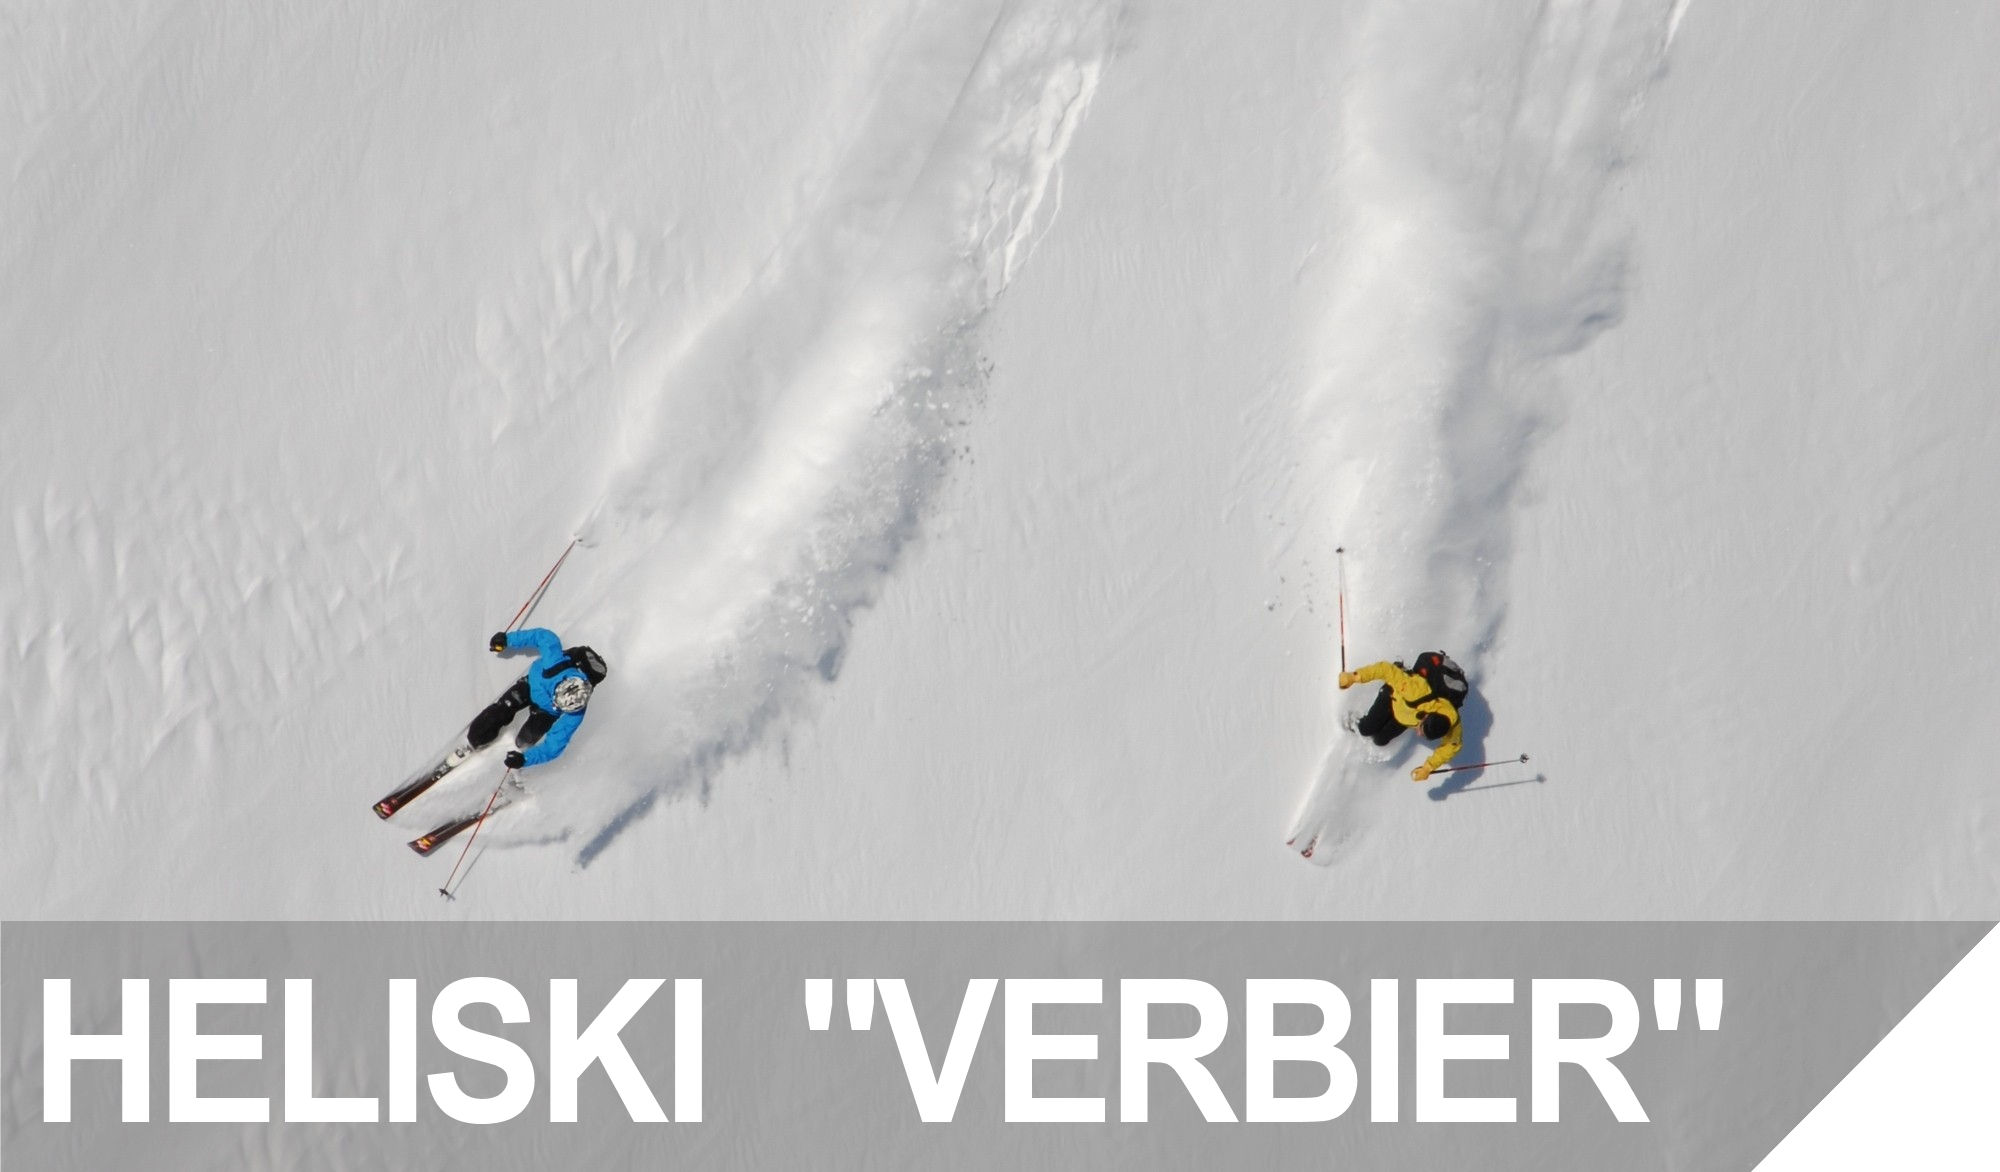 HELISKI PACKAGE VERBIER